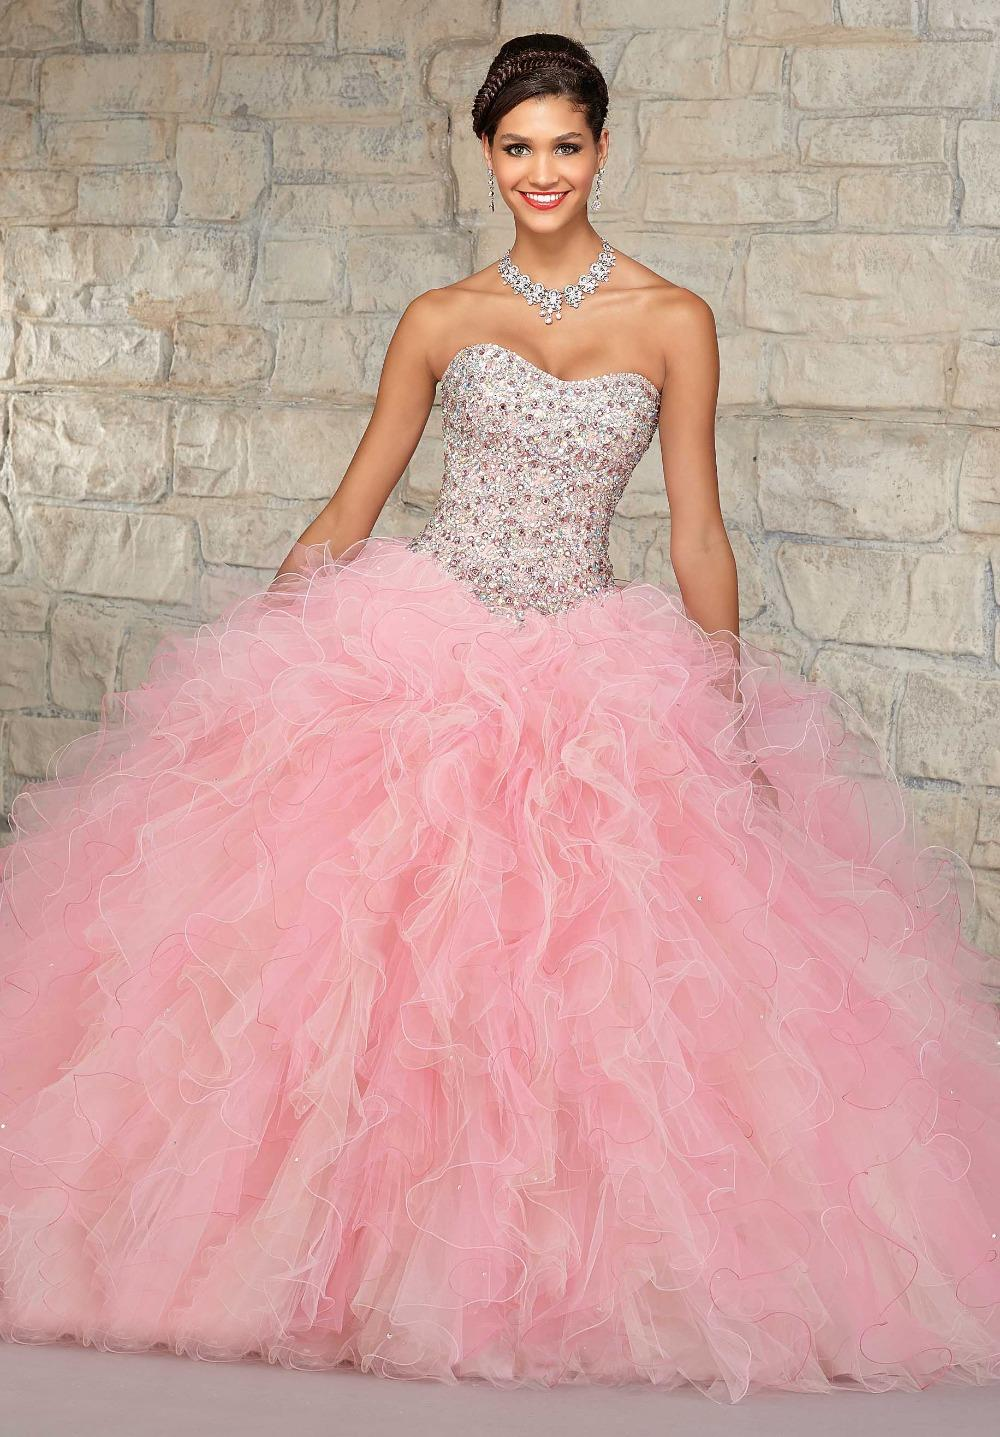 Elegant Ball Gown Ruffled Organza Skirt Beaded Crystals Top Light ...